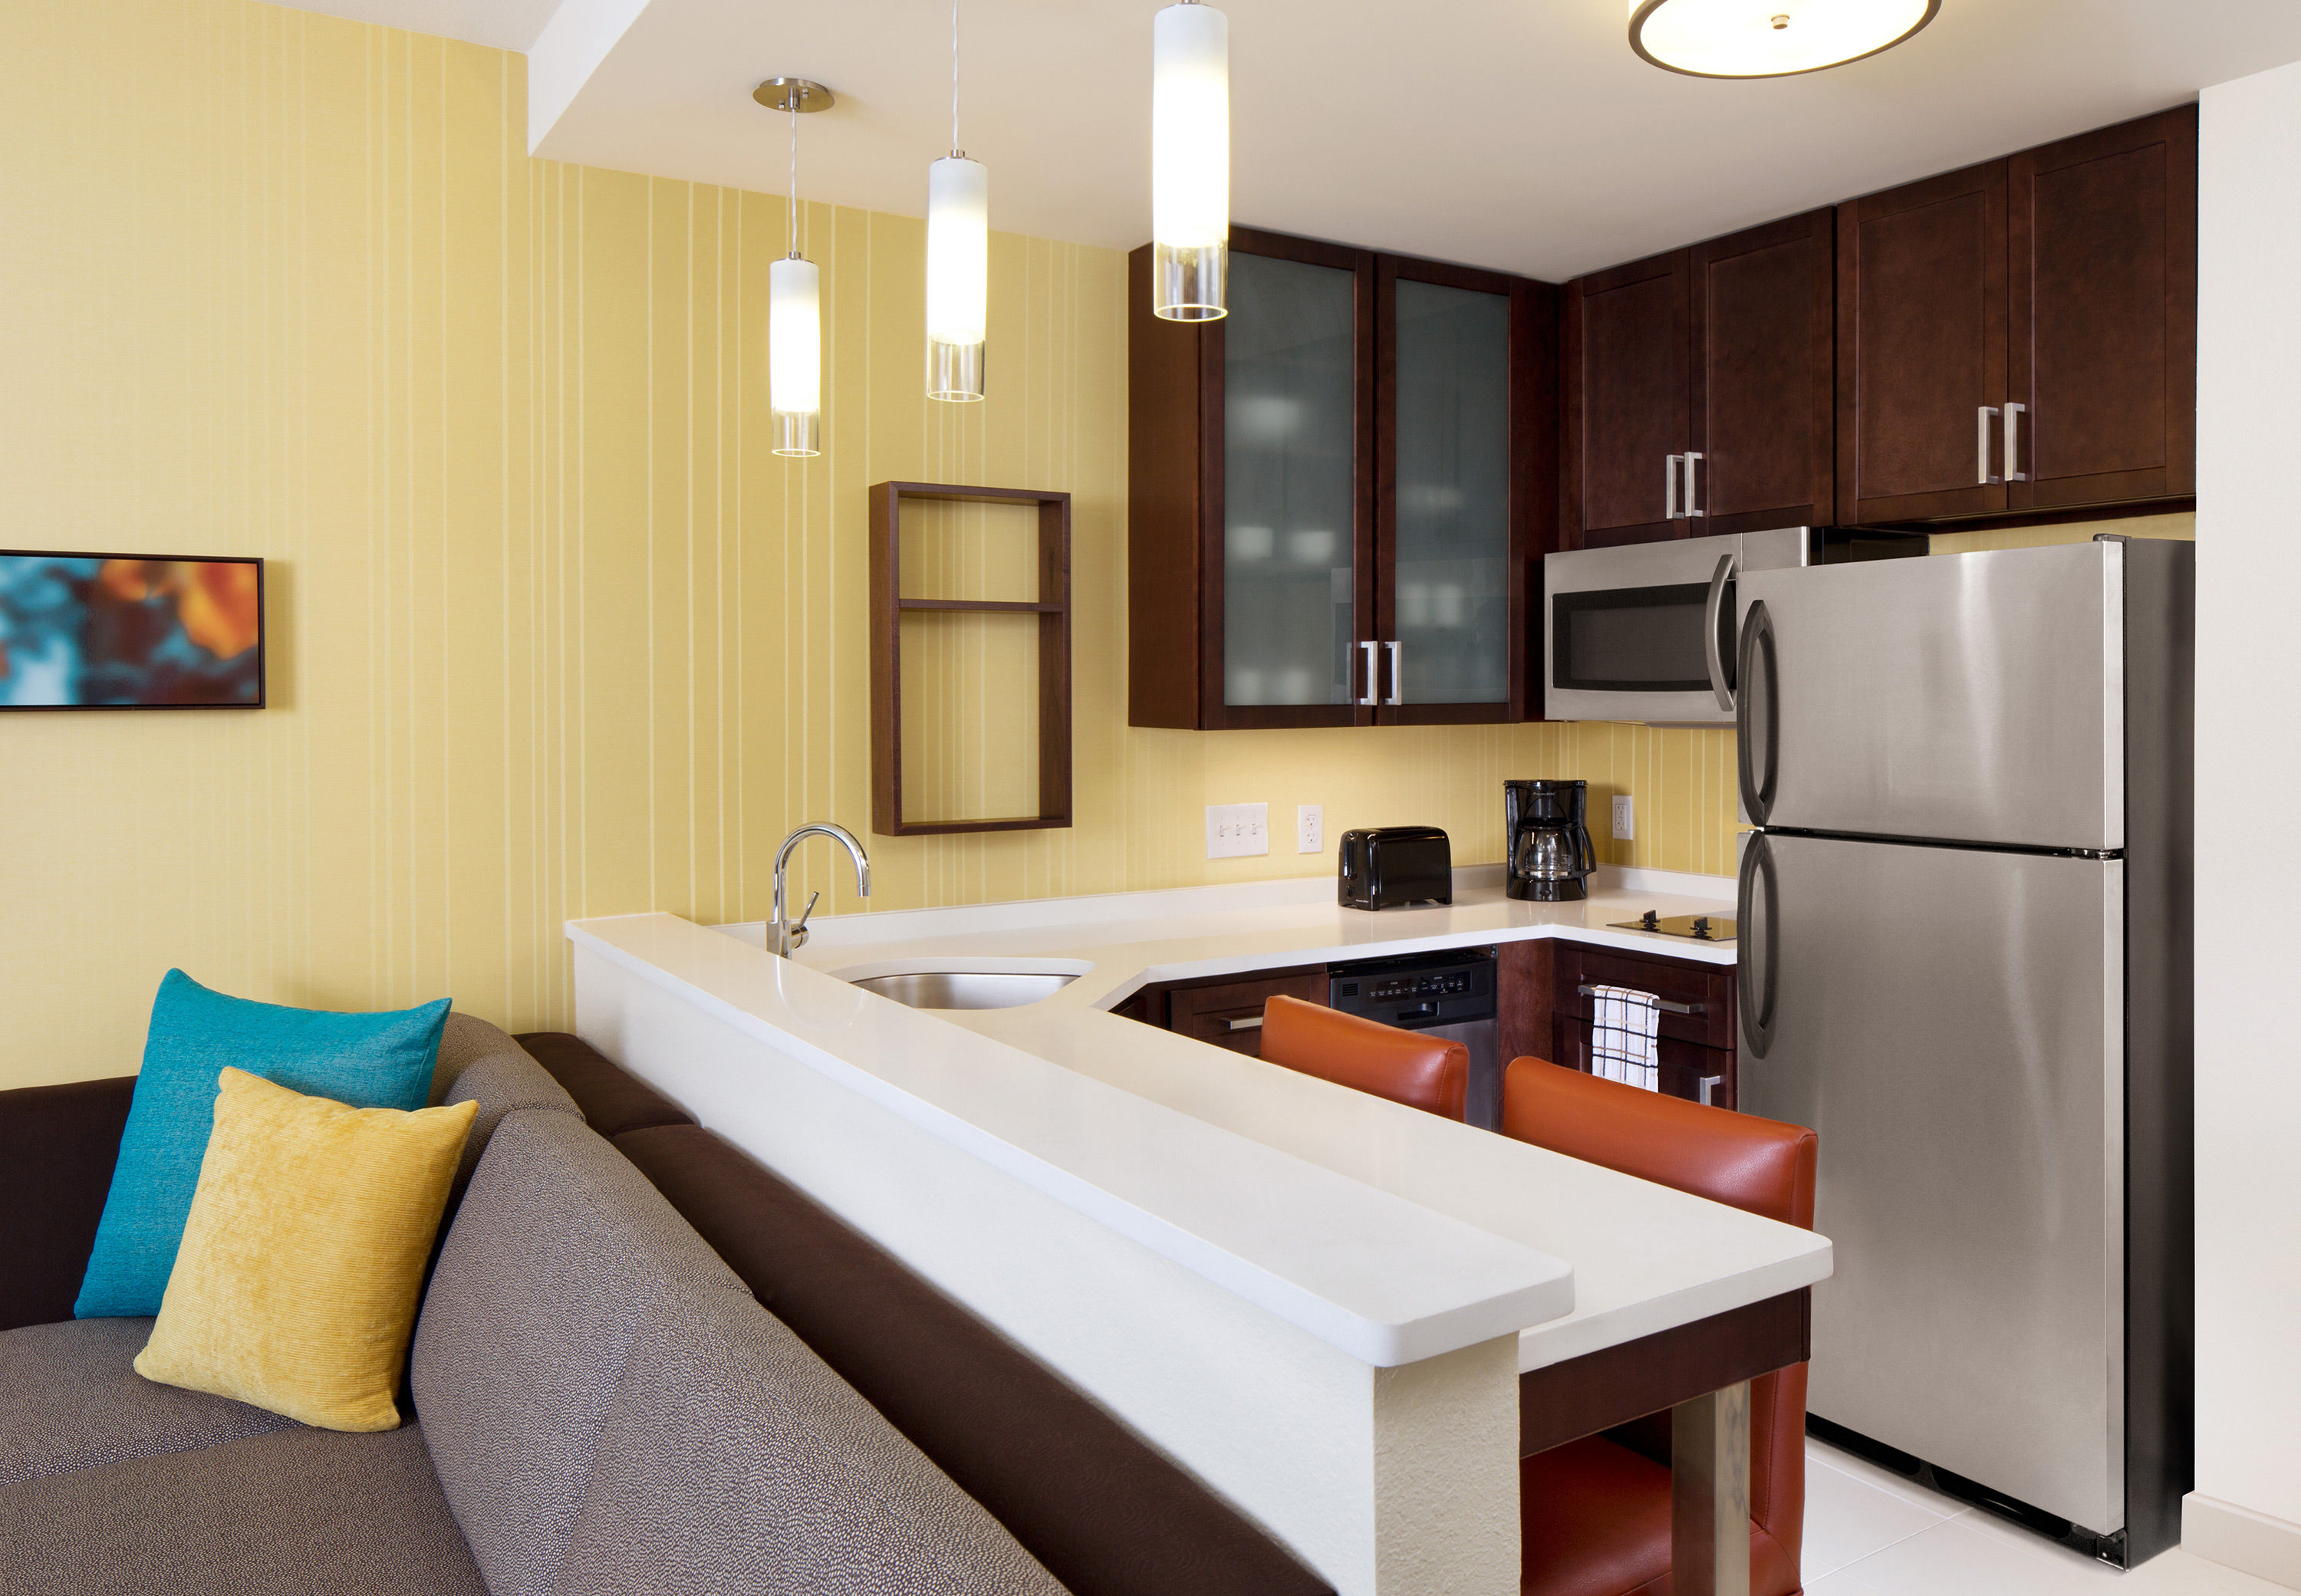 Residence Inn by Marriott Cleveland Avon at The Emerald Event Center image 3